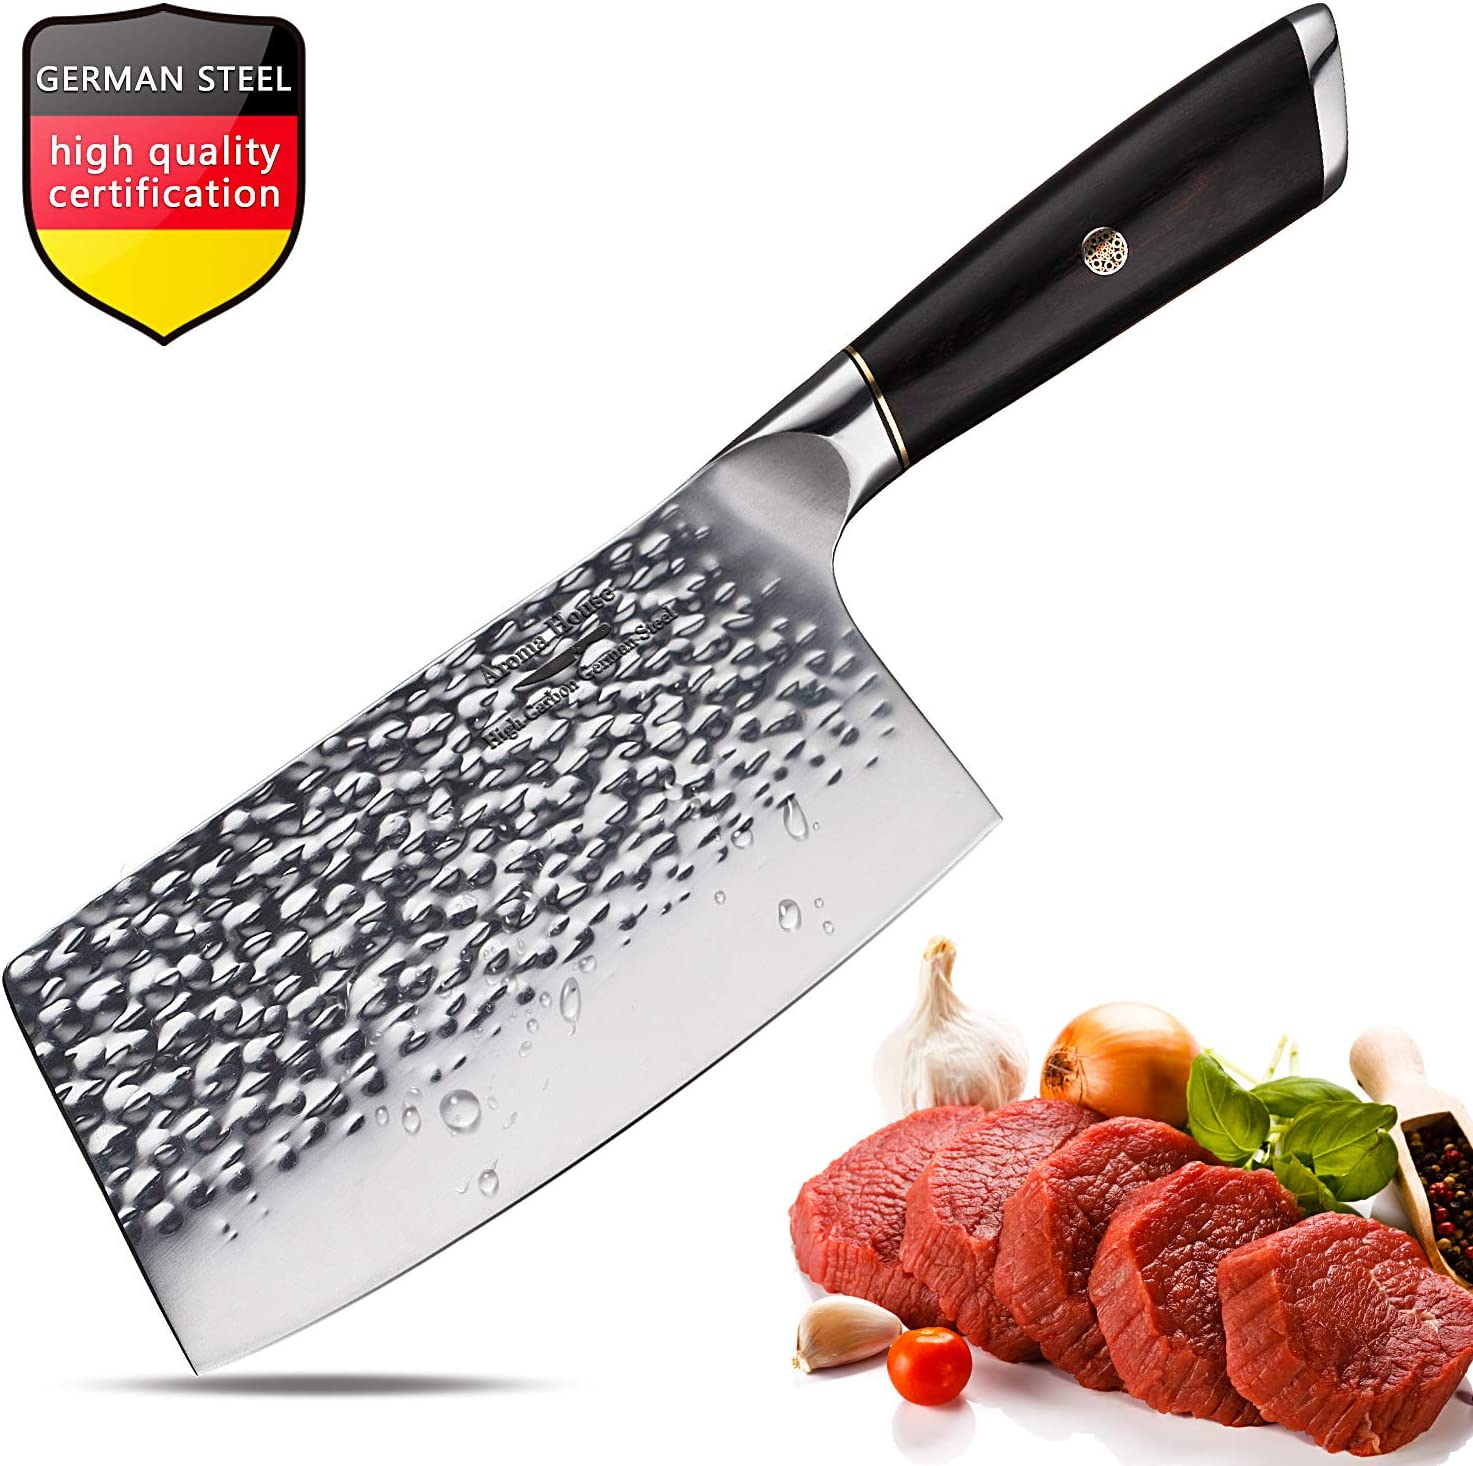 Meat Cleaver,Chinese Chef Knife,7 Inch Vegetable Kitchen Knife,German Stainless-Steel Chopper Cleaver Butcher Knife for Home Kitchen or Restaurant (German Steel Kitchen Knife)